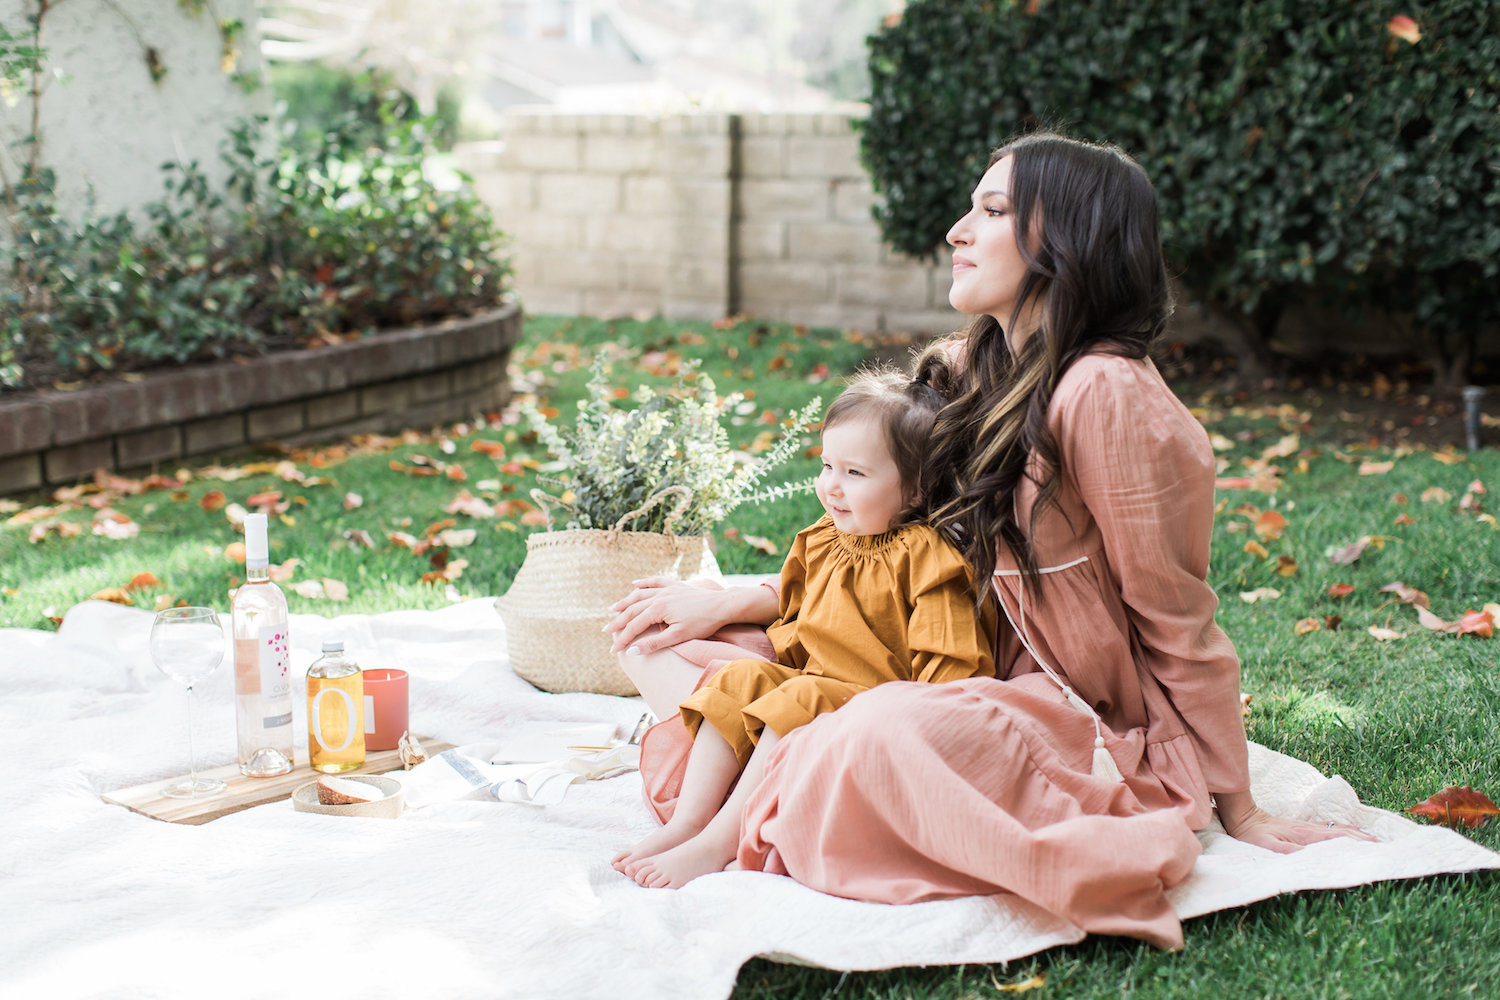 The Life Styled Catherine Sheppard Spring Styling Special